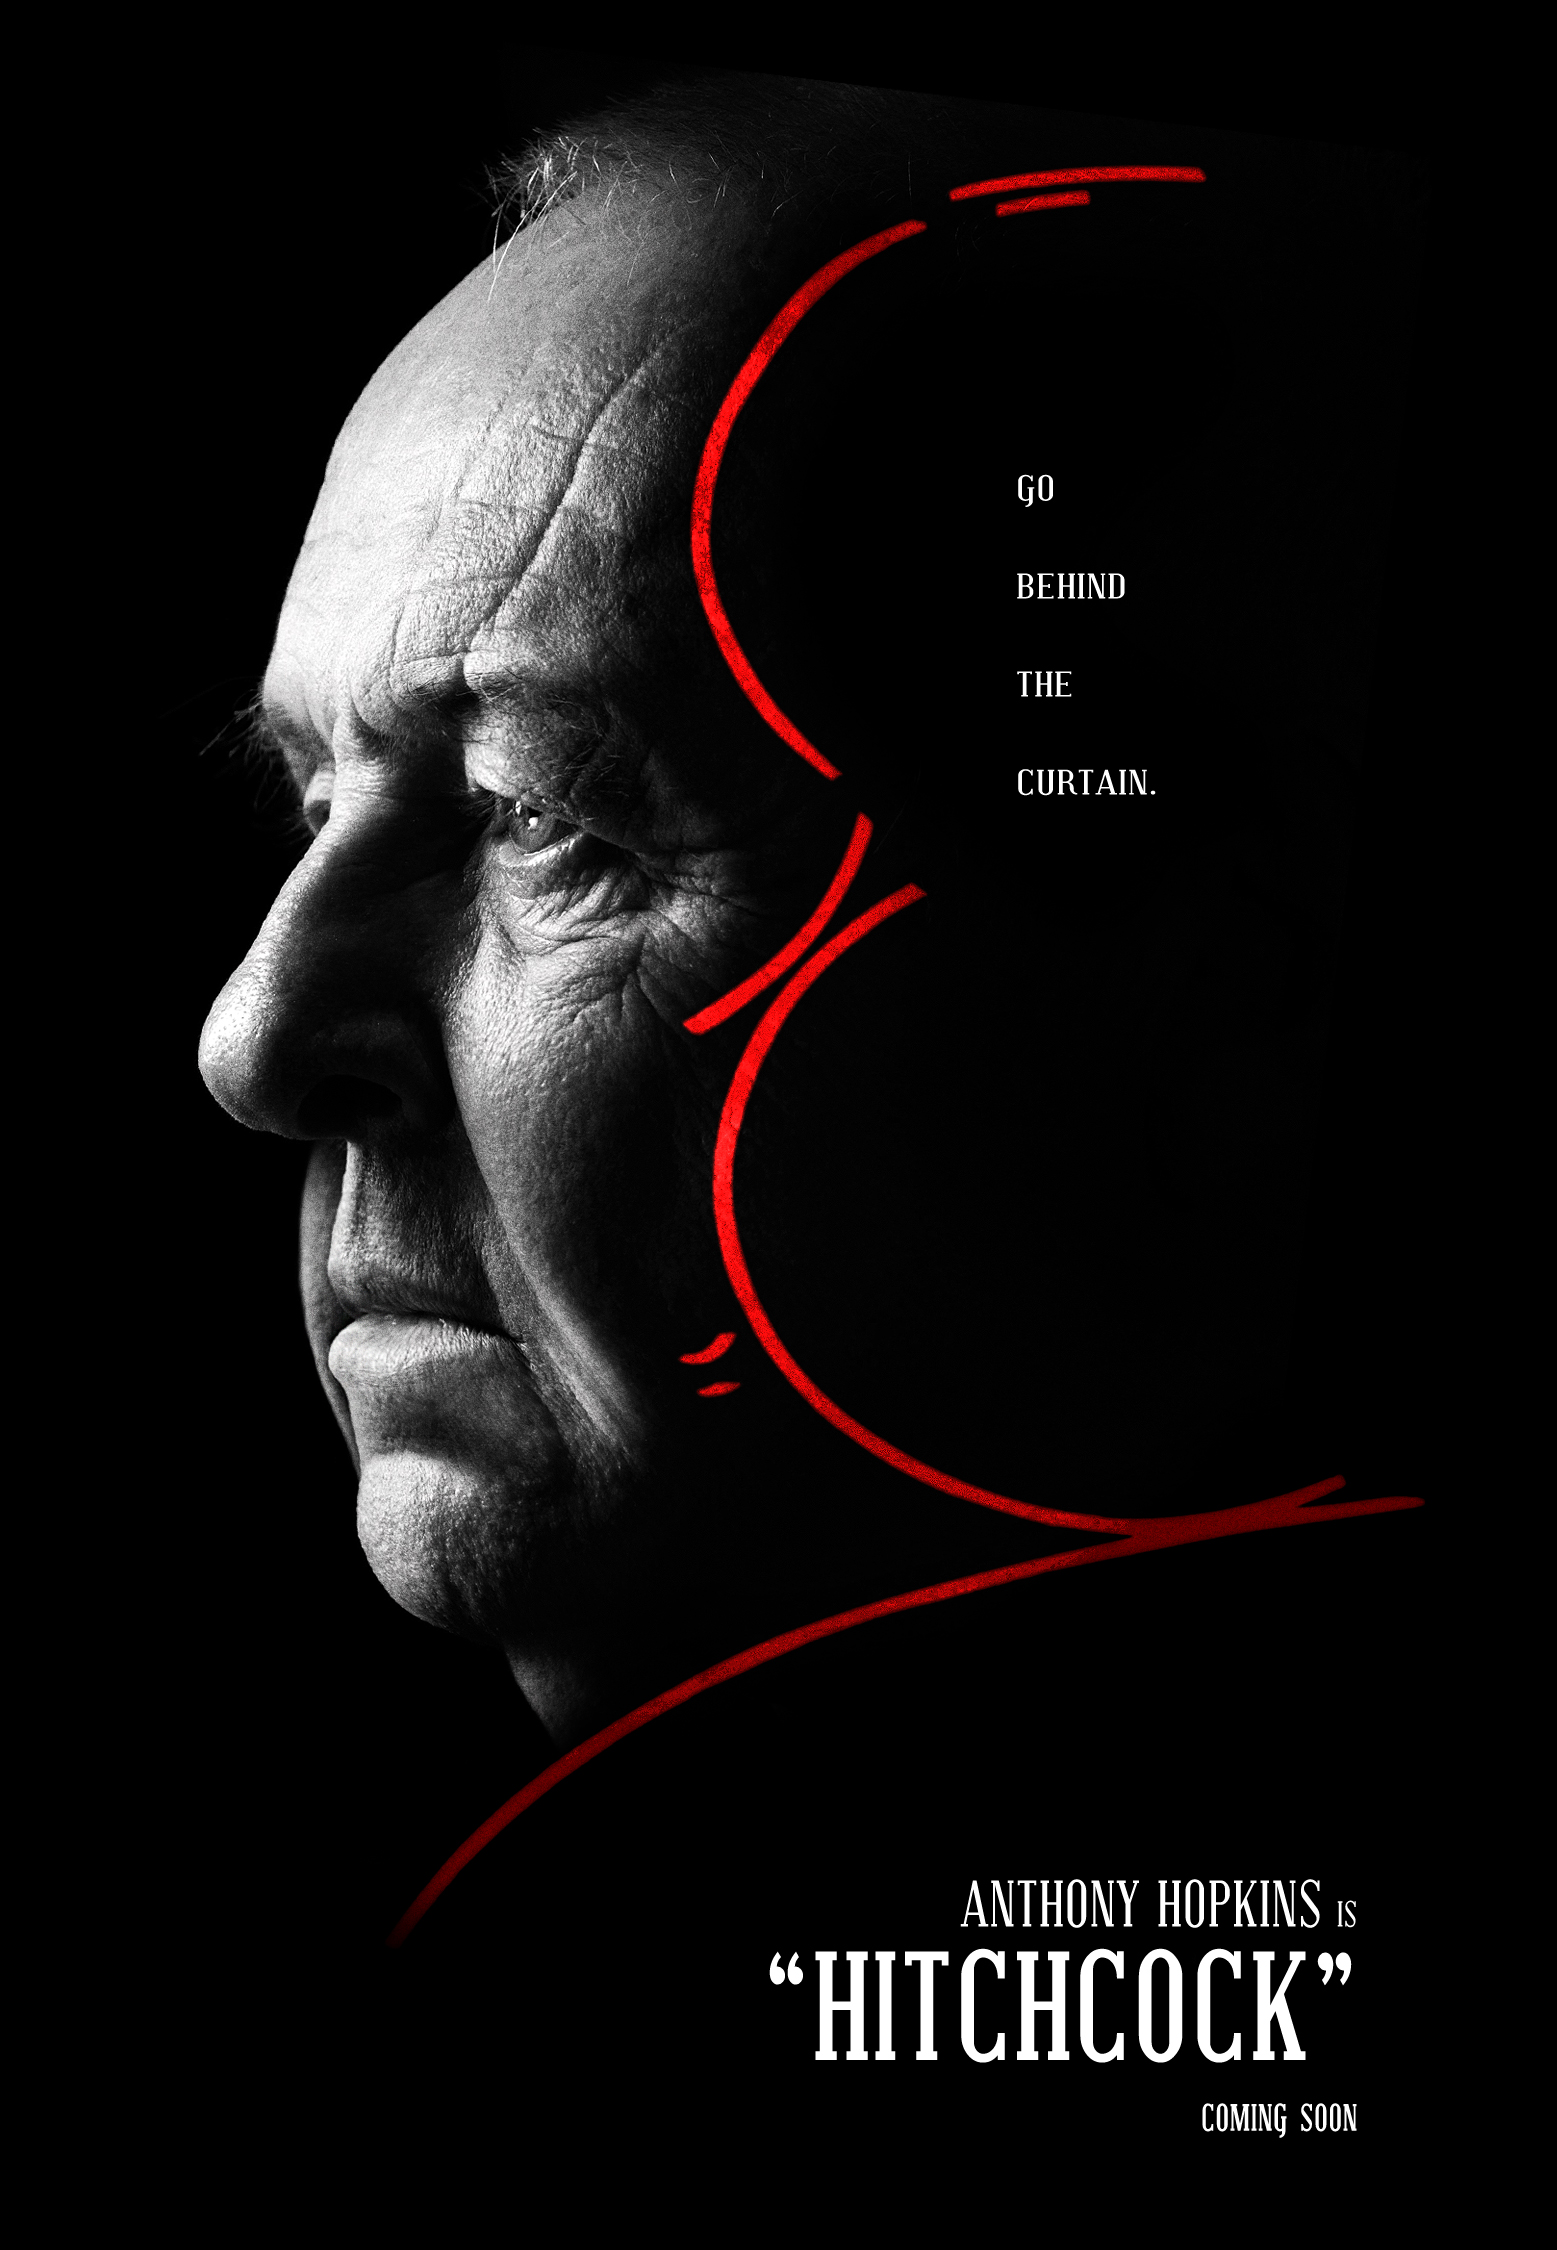 Hitchcock Biopic Teaser Poster by themadbutcher